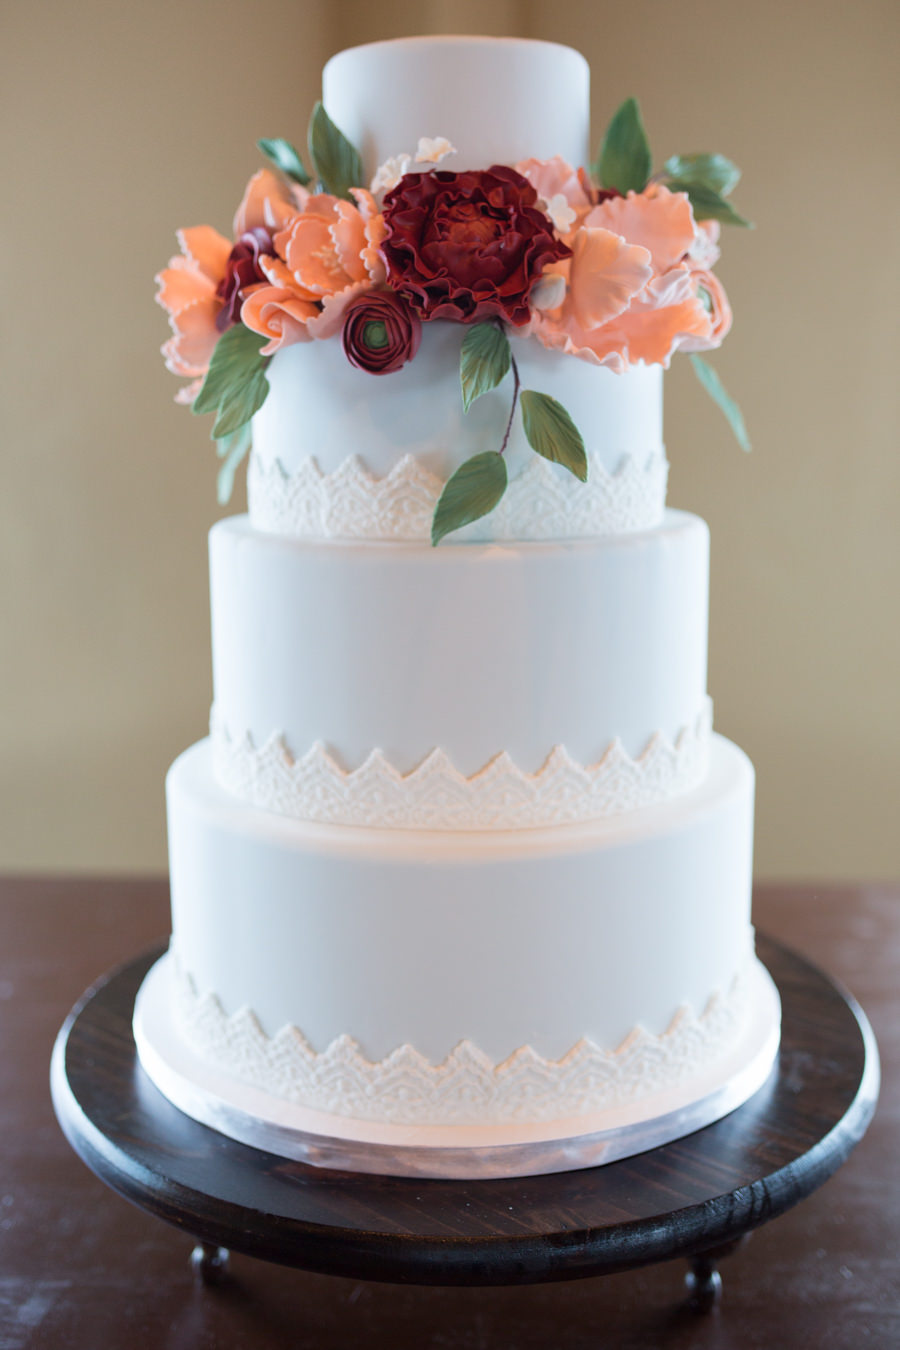 Four Tiered Round Light Blue with Triangle Lace Pattern Wedding Cake on Dark Wood Cake Stangd, with Peach and Burgundy Rose with Greenery Flowers